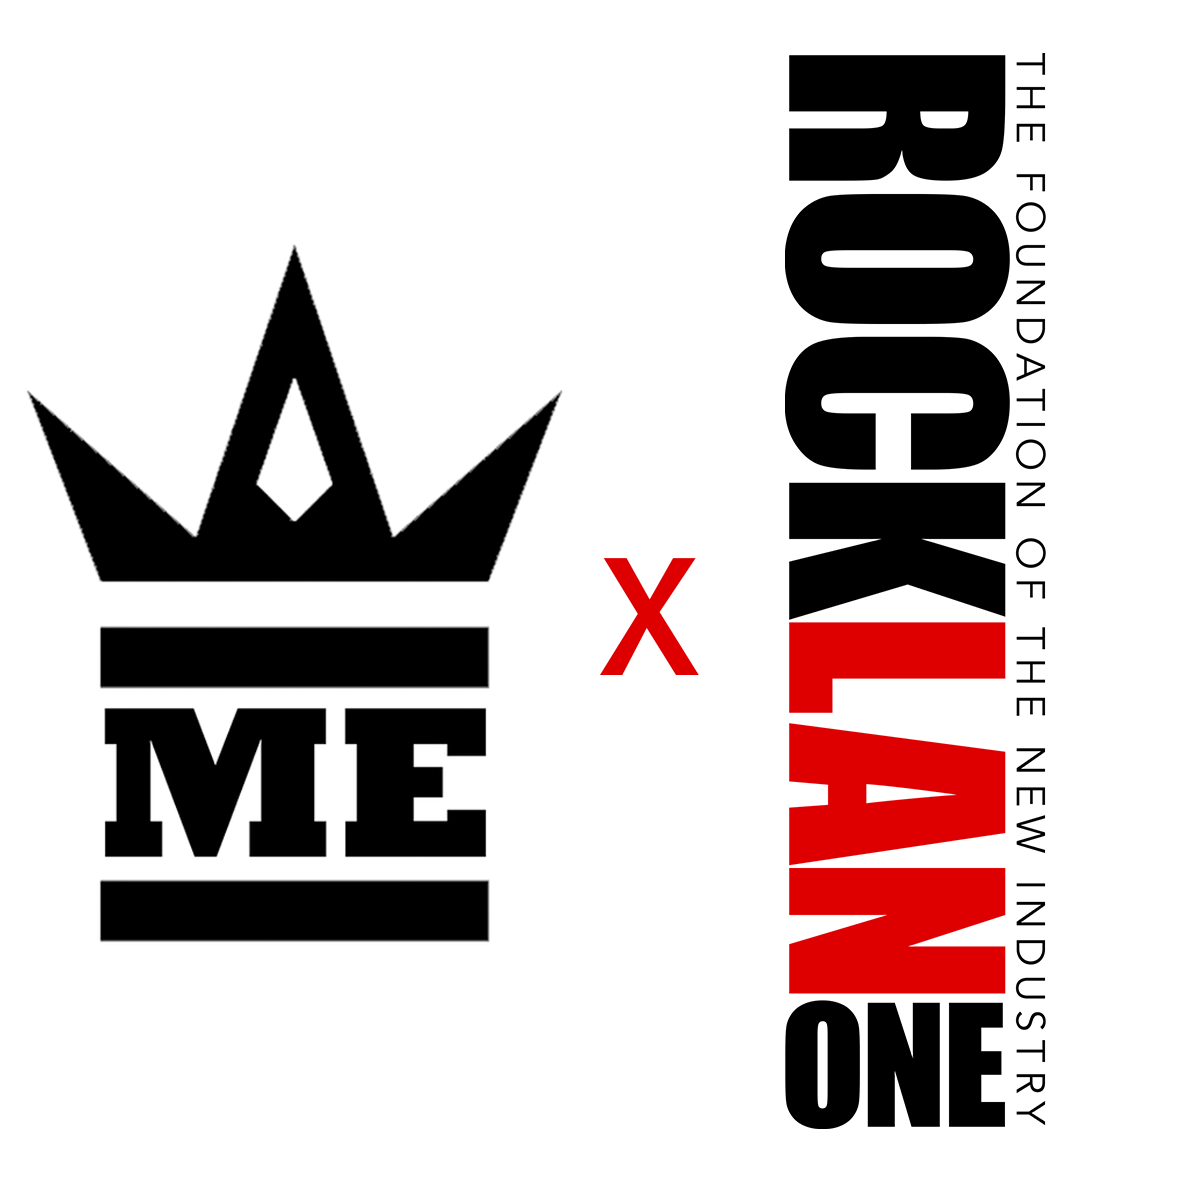 KrownMe LLC & RockLan One